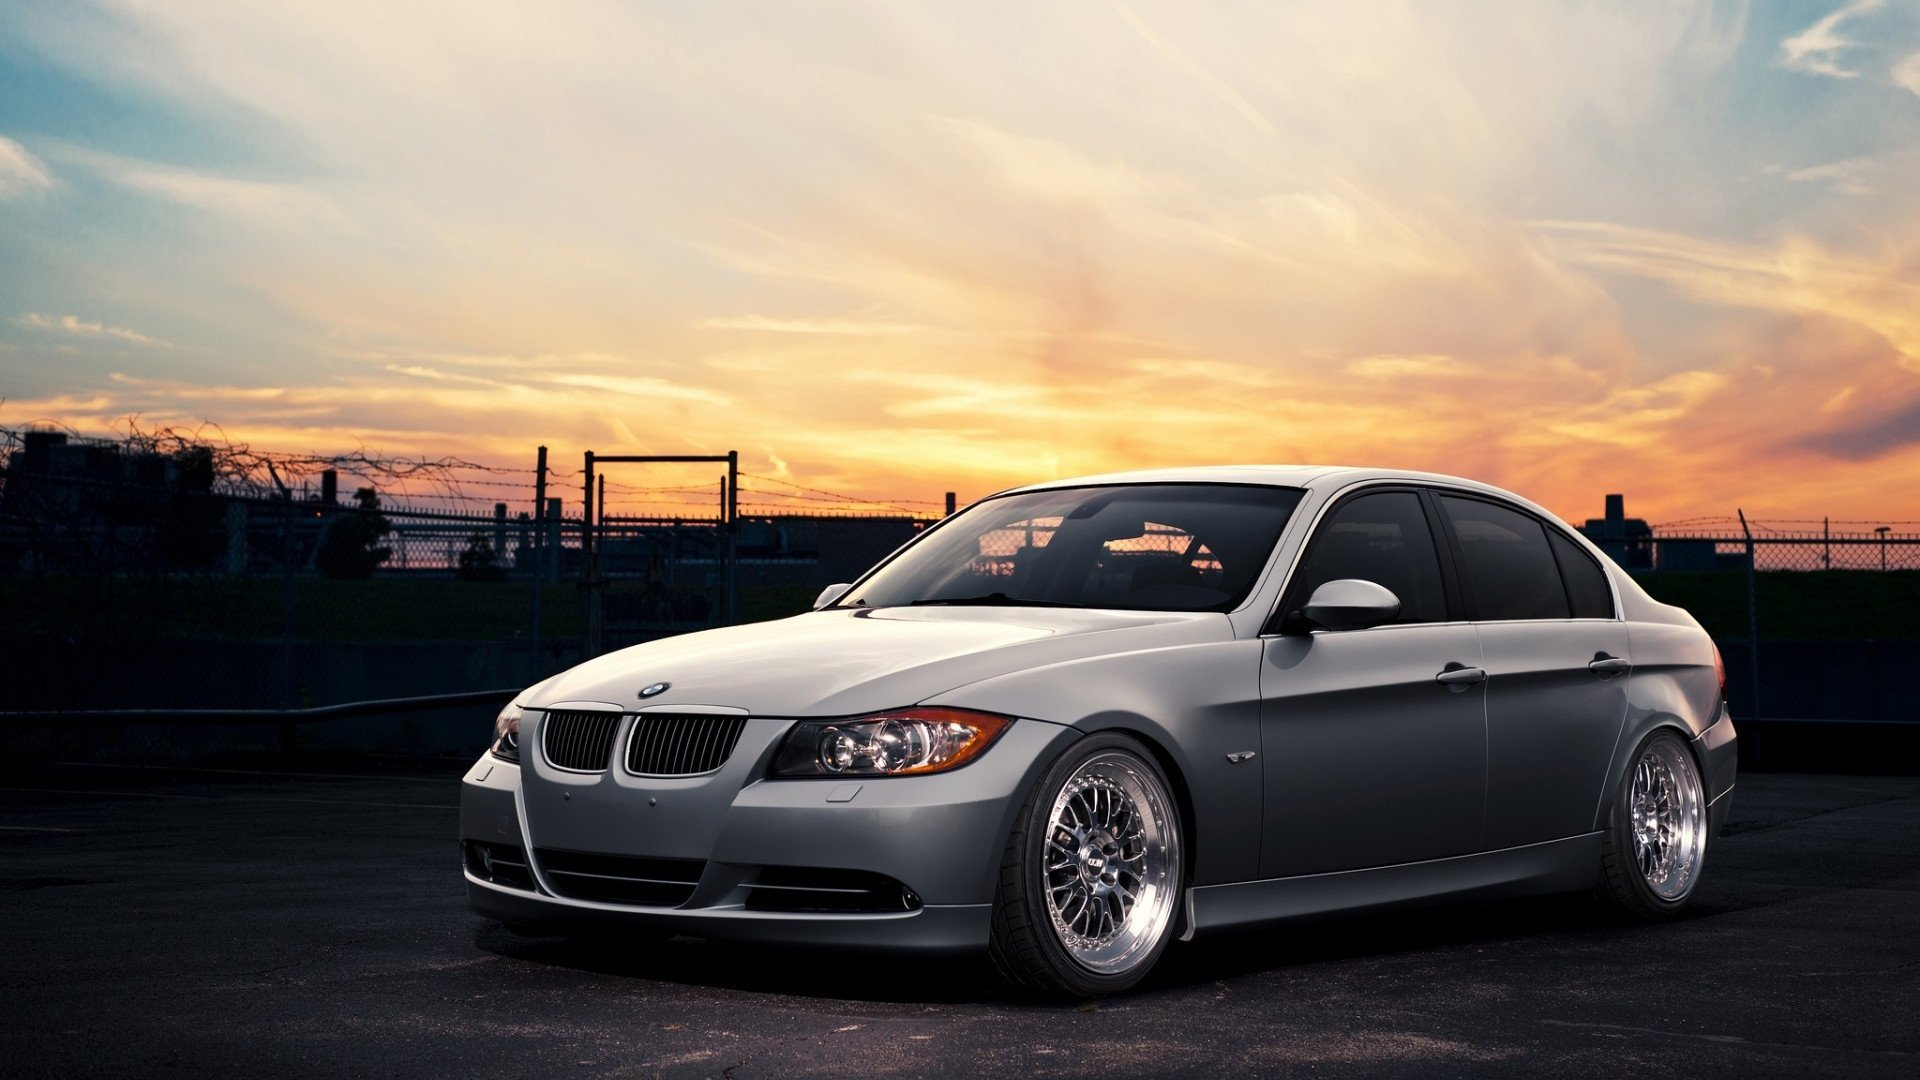 BMW HD Wallpapers 1920x1080 - WallpaperSafari